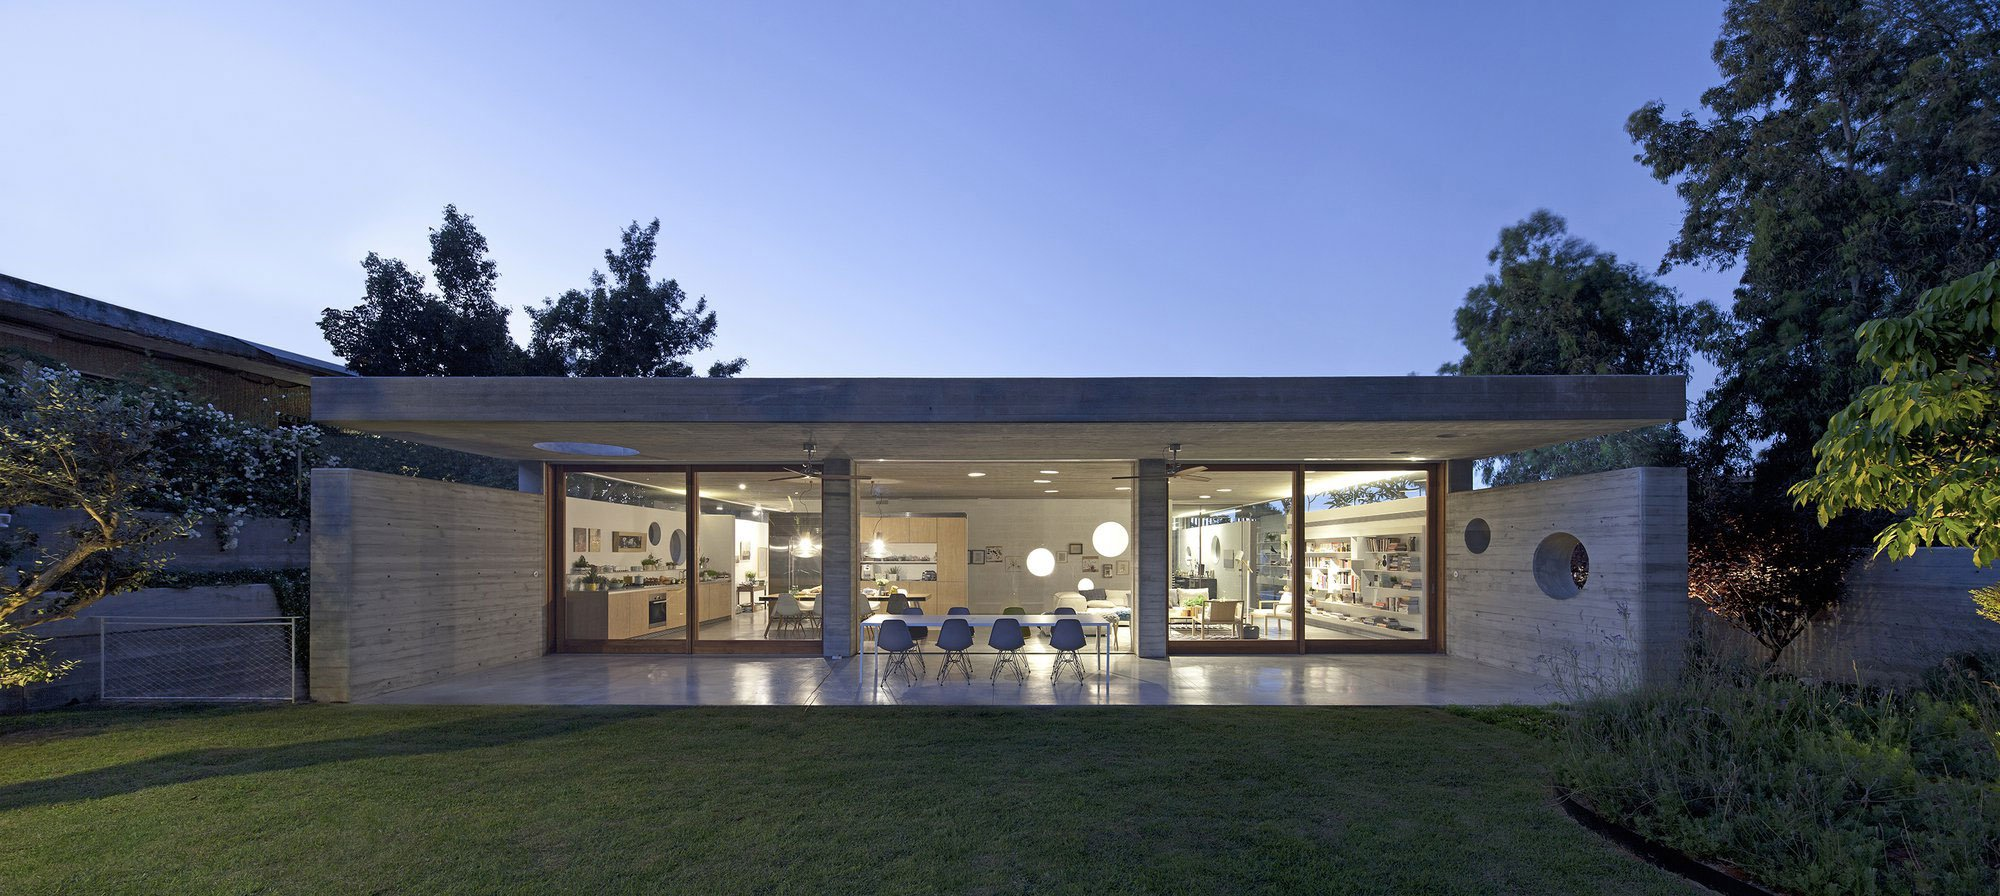 A-House-for-an-Architect-27